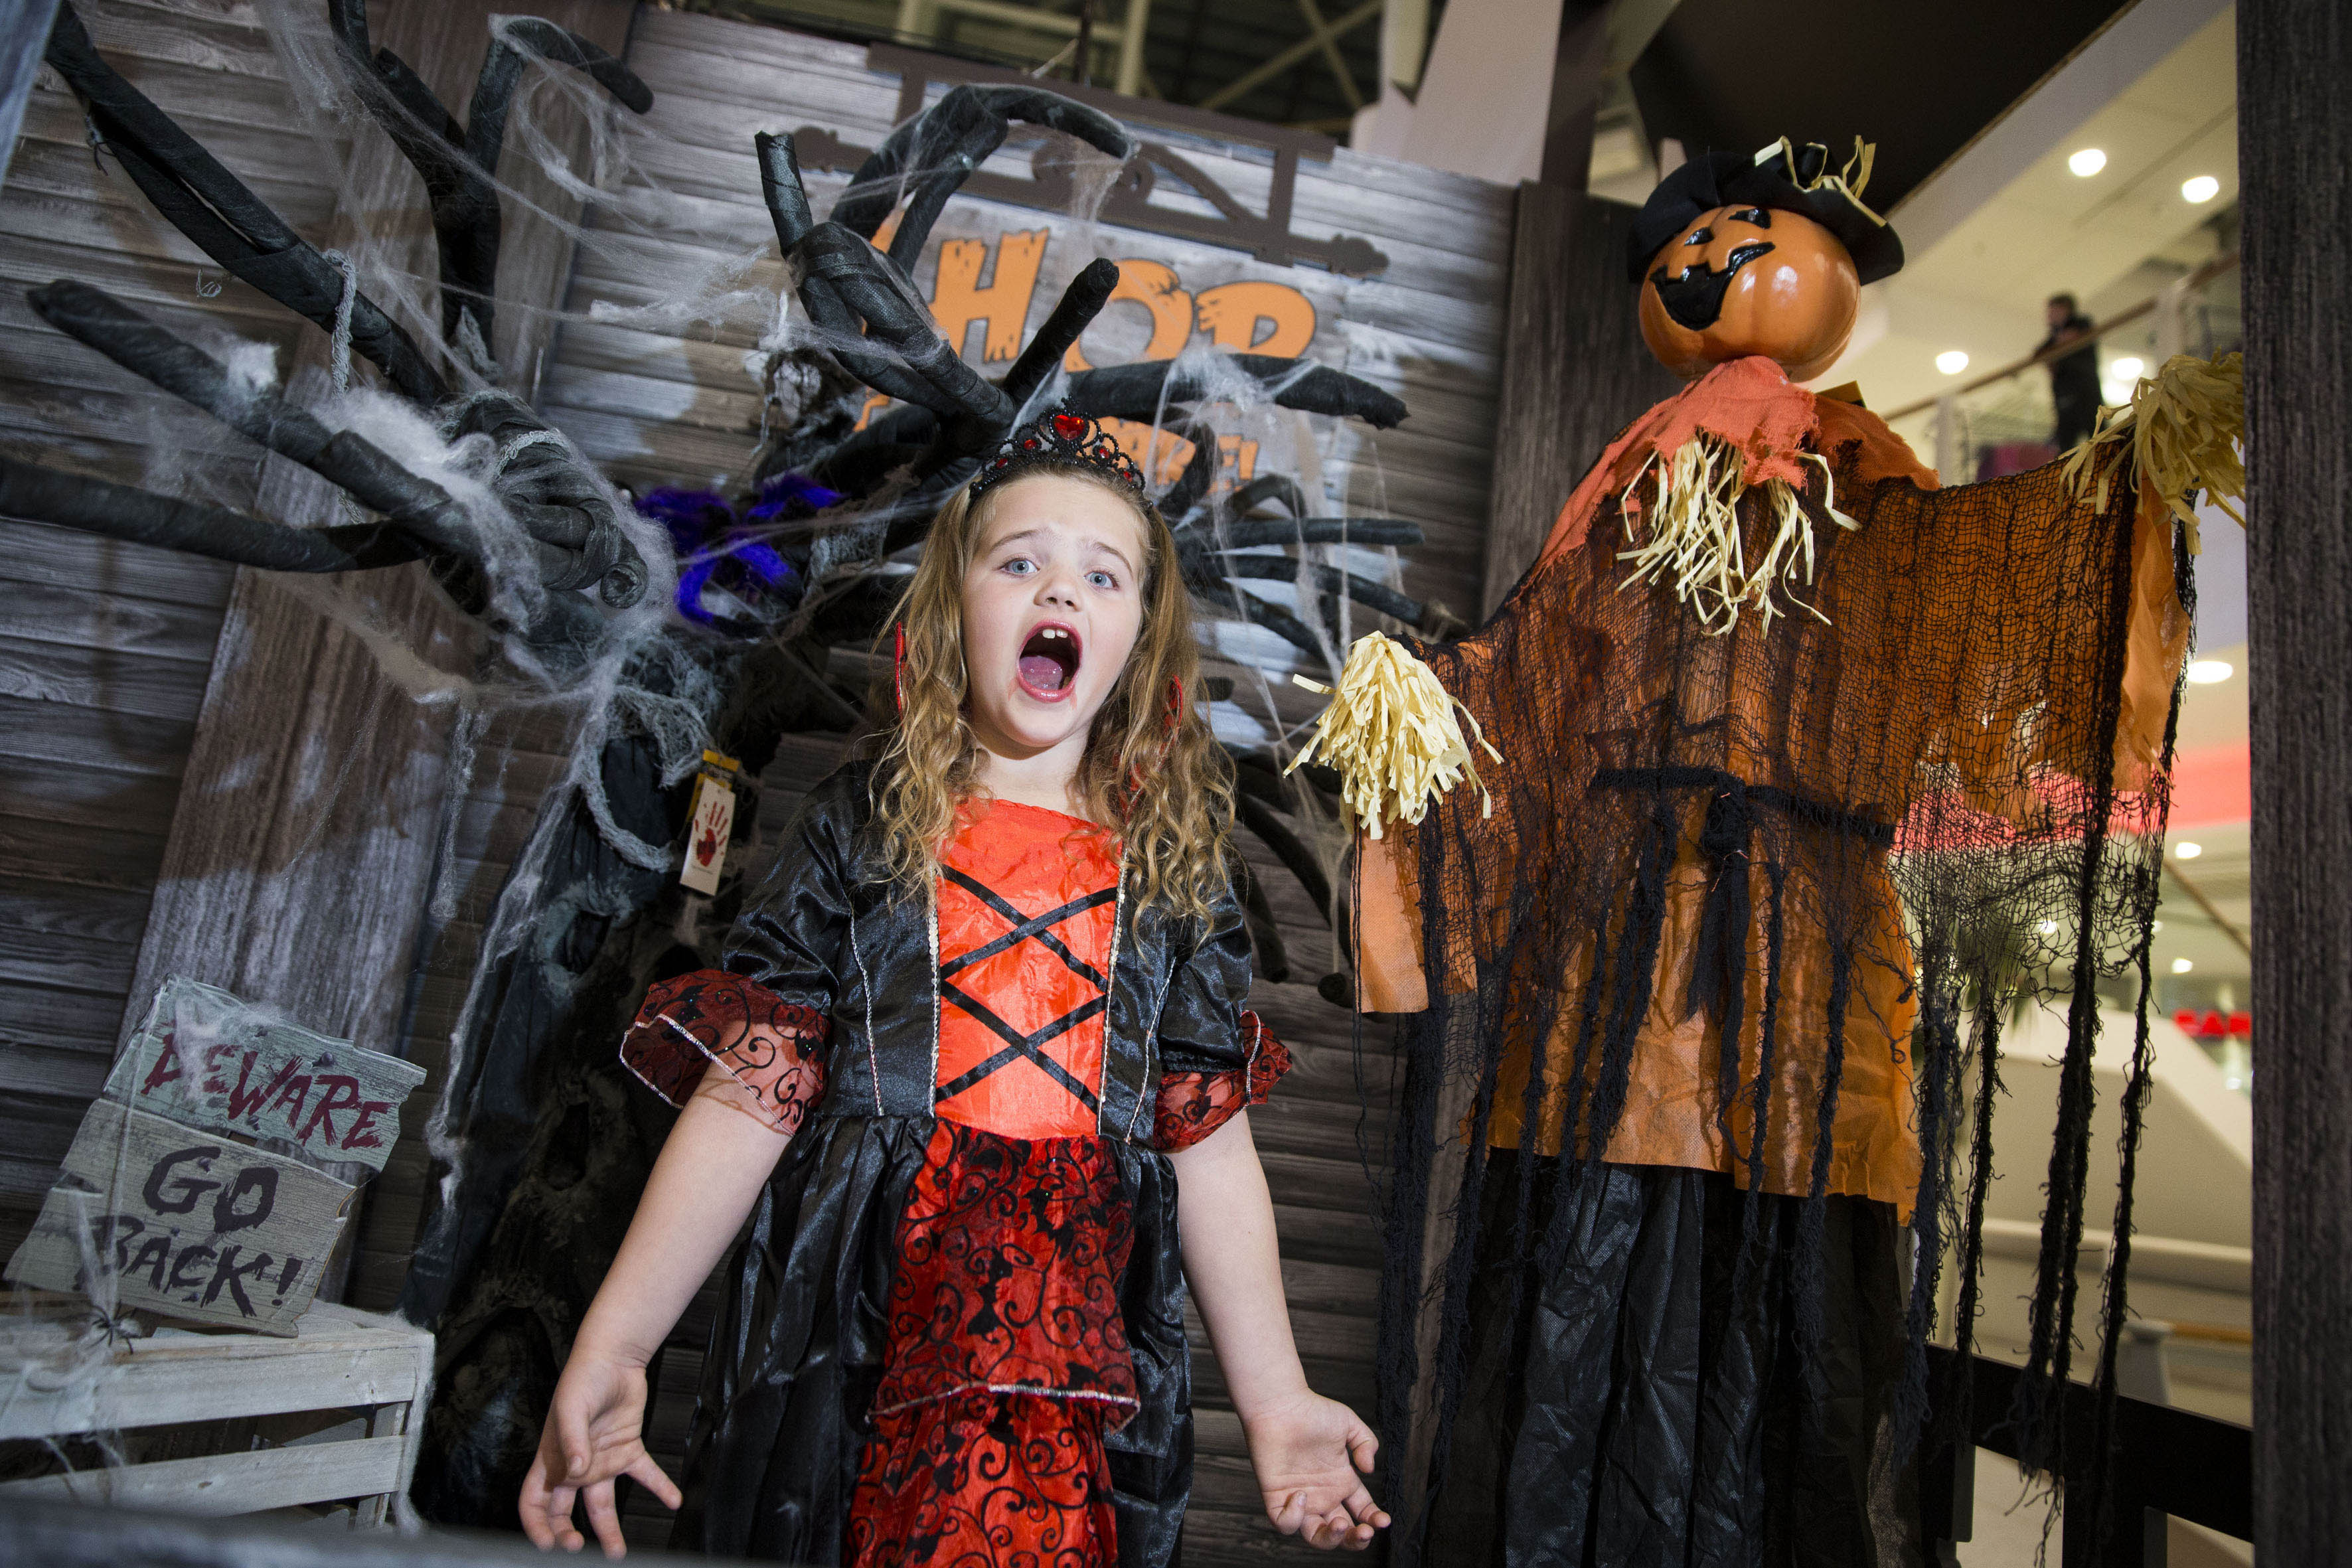 let's mall go trick or treating - paisley scotland